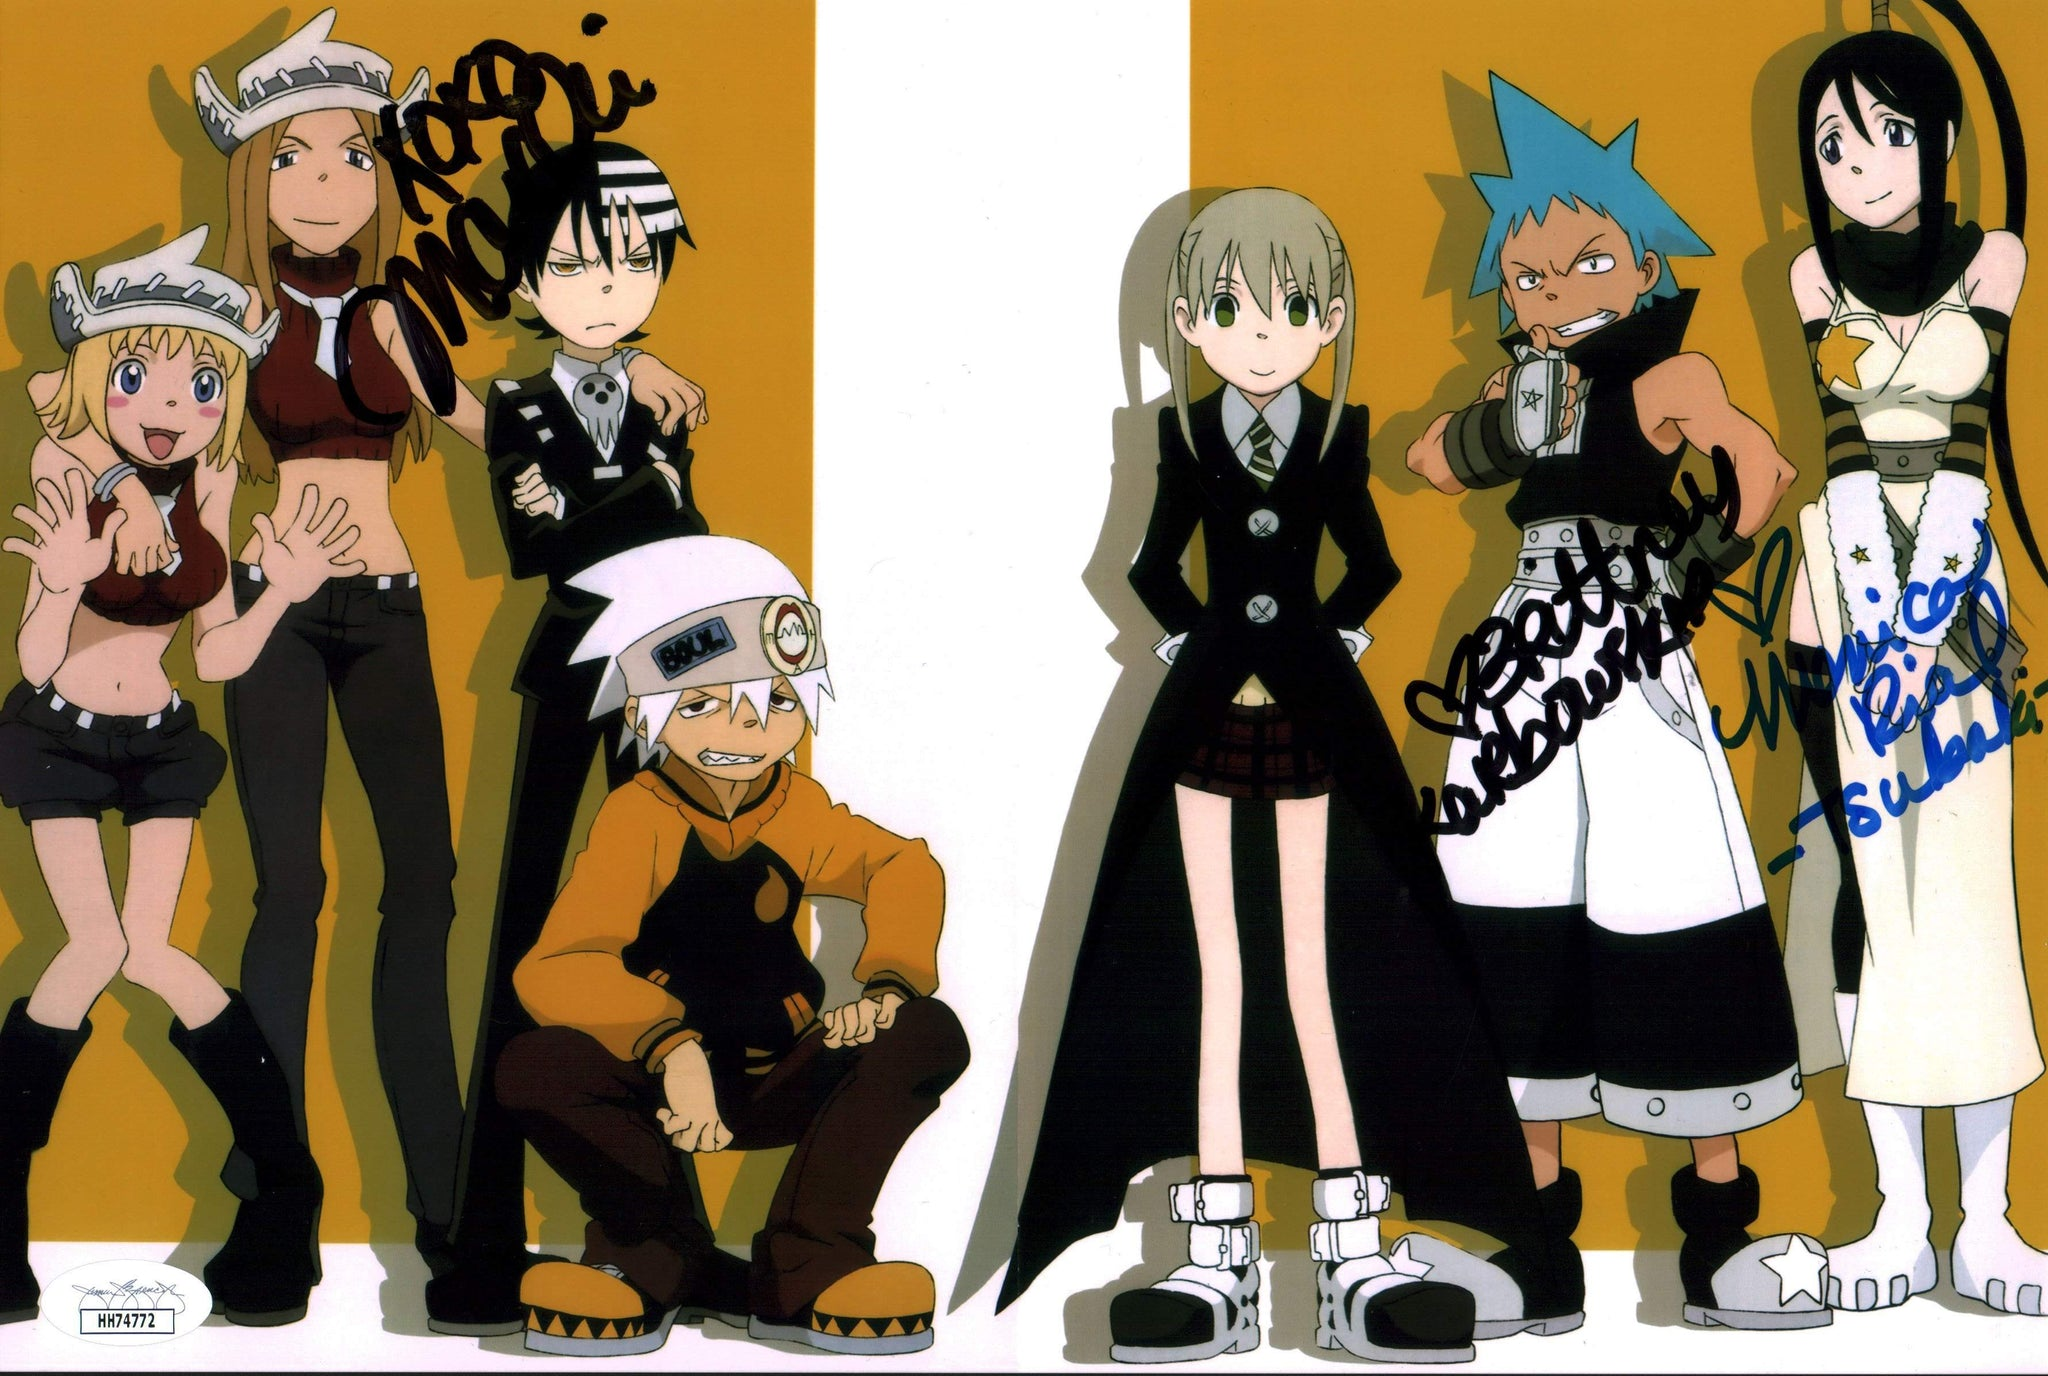 Soul Eater 8x12 Photo Signed Autograph Rial Karbowski Marchi JSA Certified COA GalaxyCon